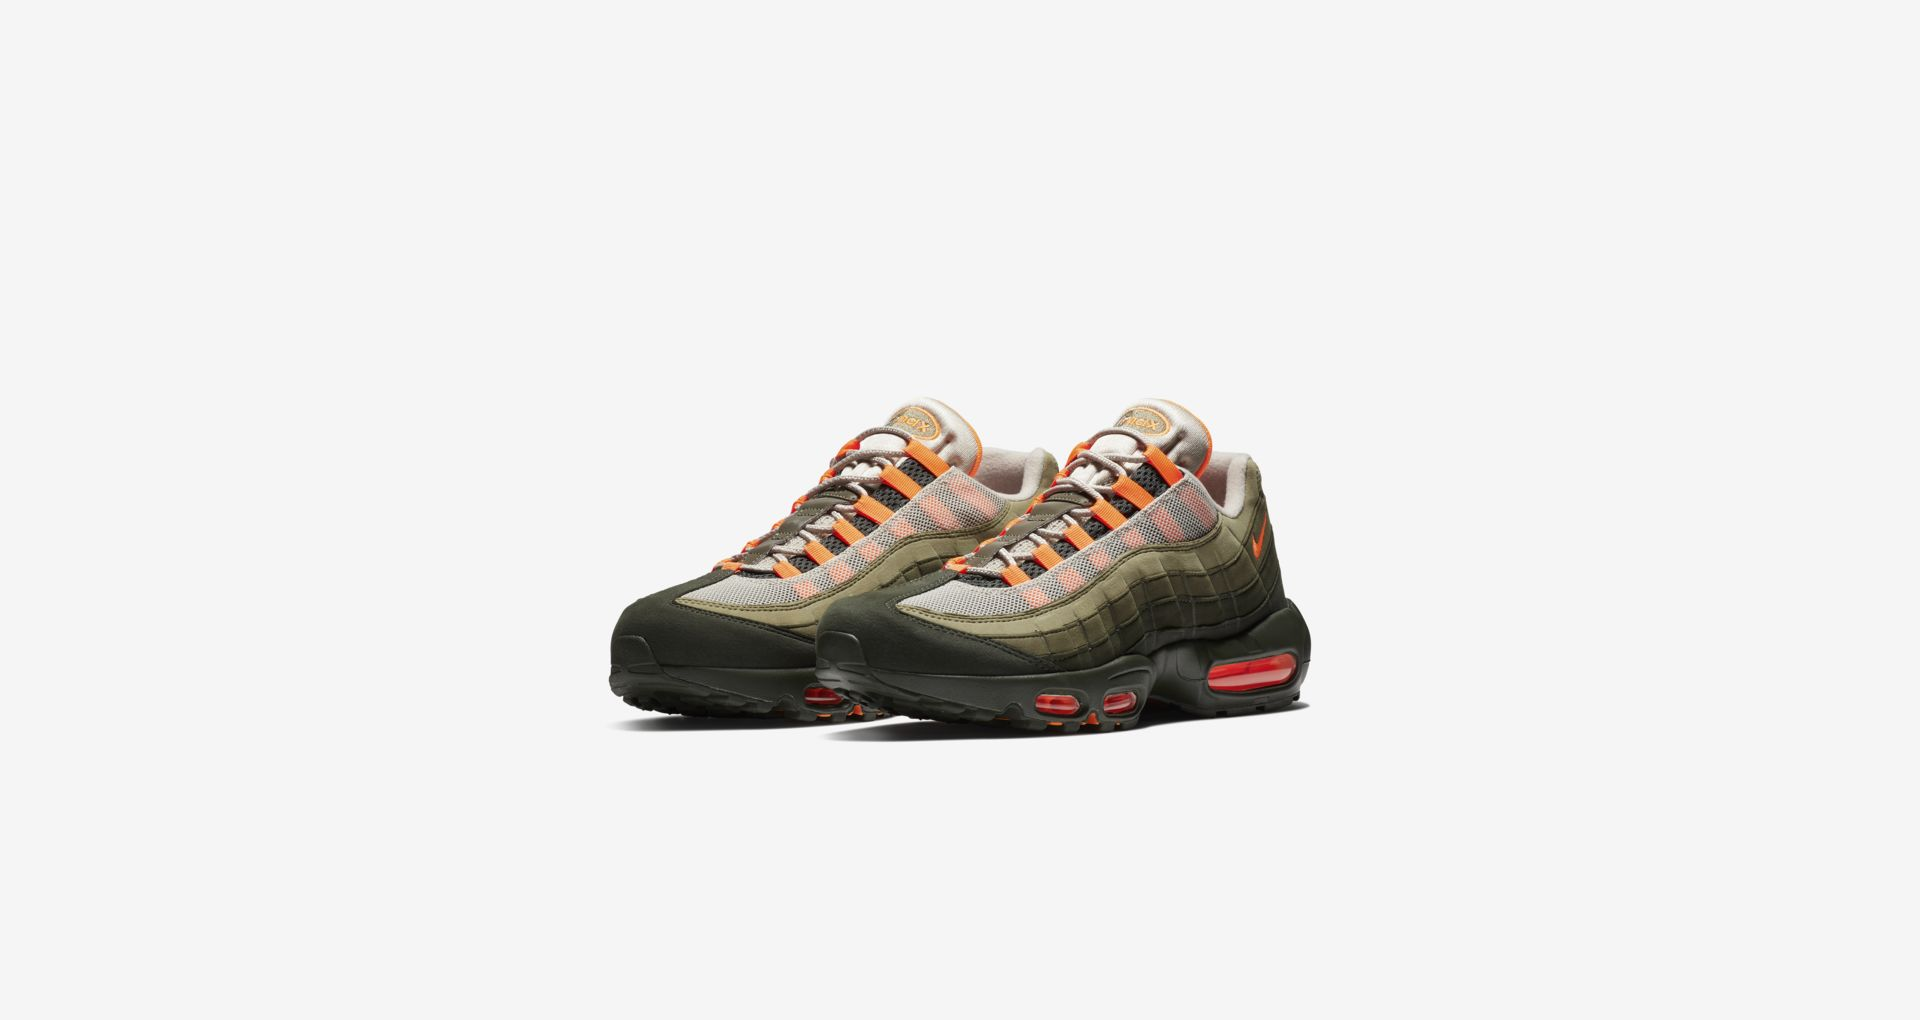 AT2865 200 Nike Air Max 95 OG Total Orange 1